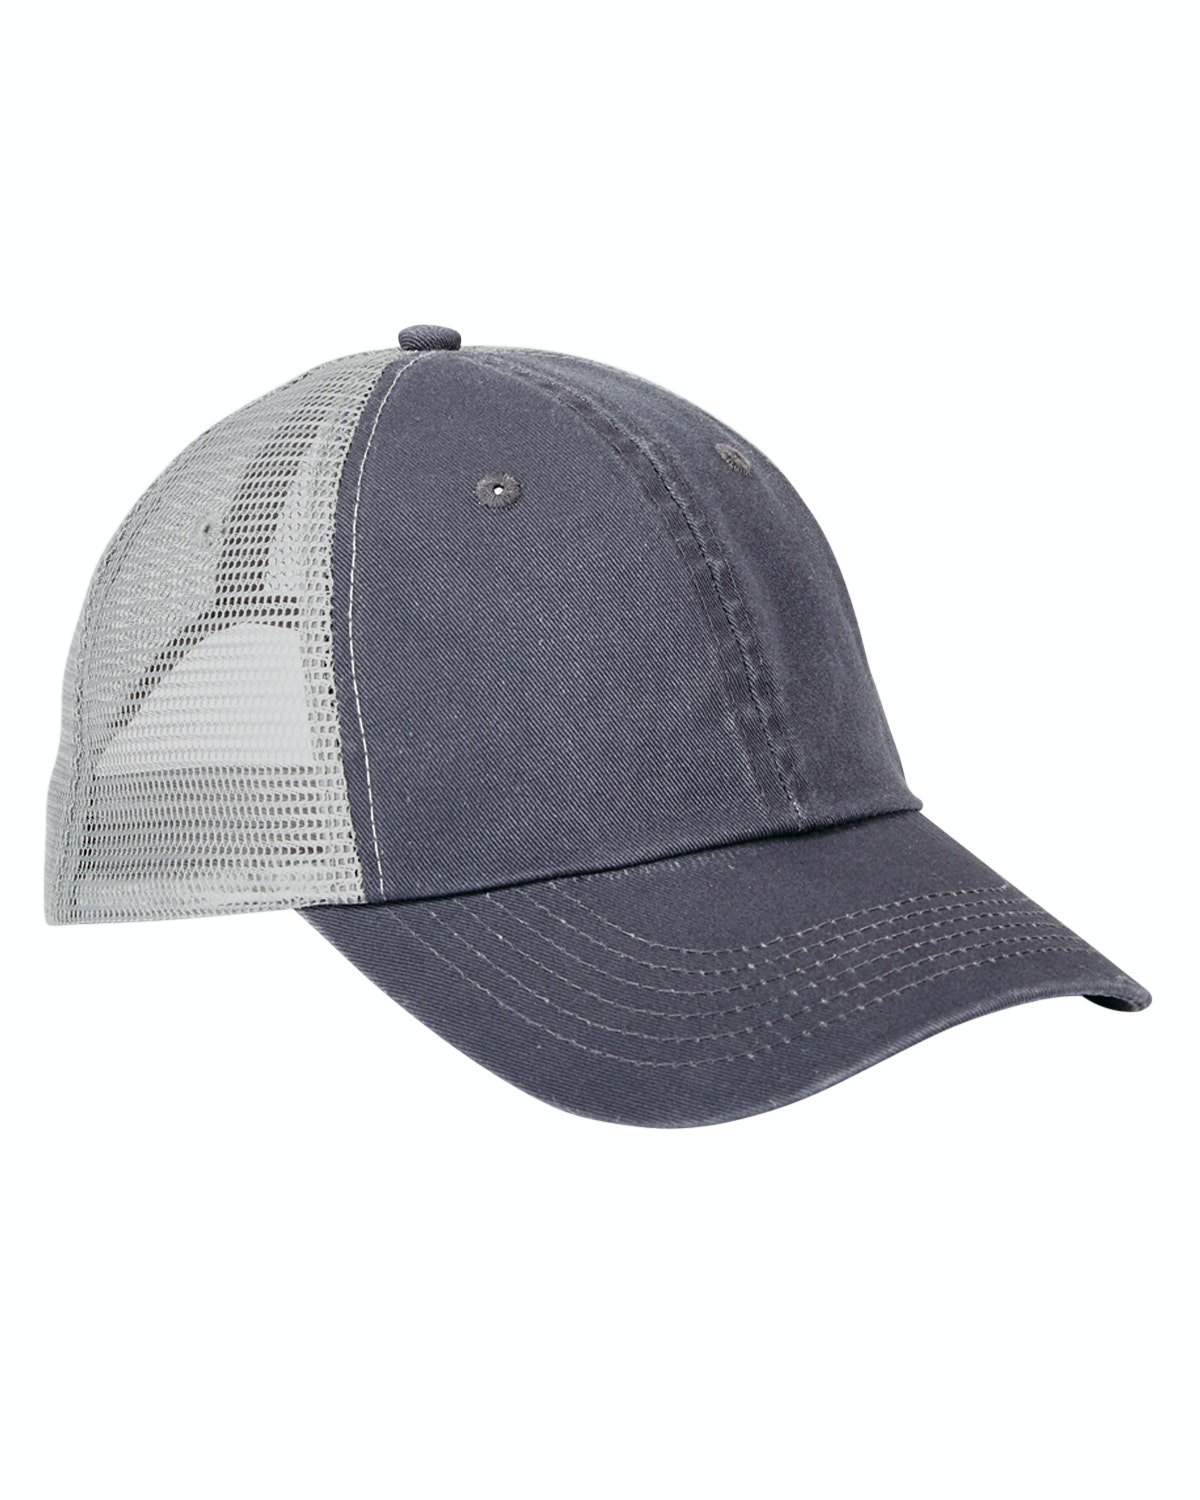 ADAMS VB101 Charcoal/Lt Grey